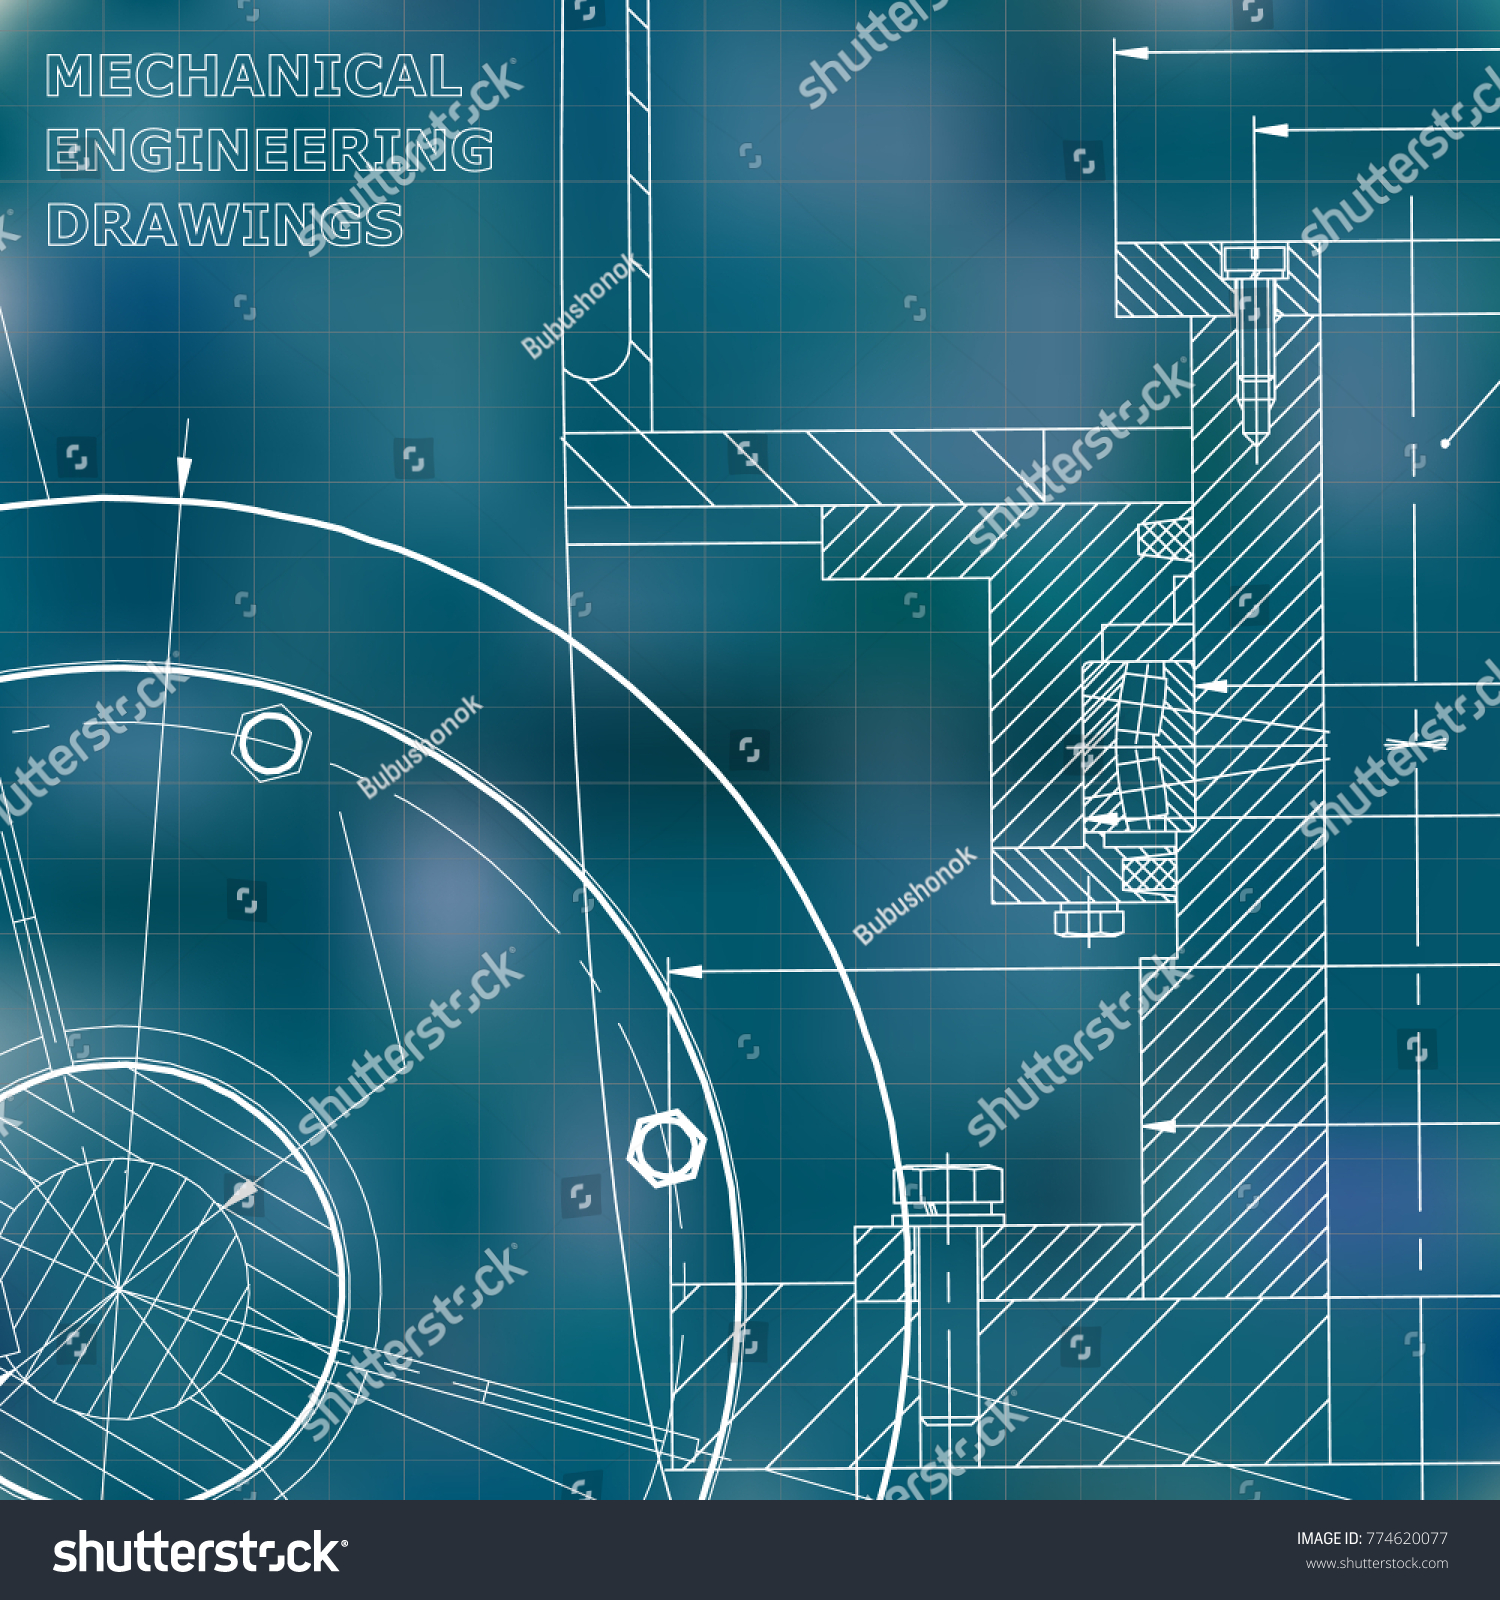 Engineering Schematic Background Wire Center Wow Schematics Backgrounds Subjects Technical Illustration Mechanical Rh Shutterstock Com Electrical Logic Symbols Shcematics